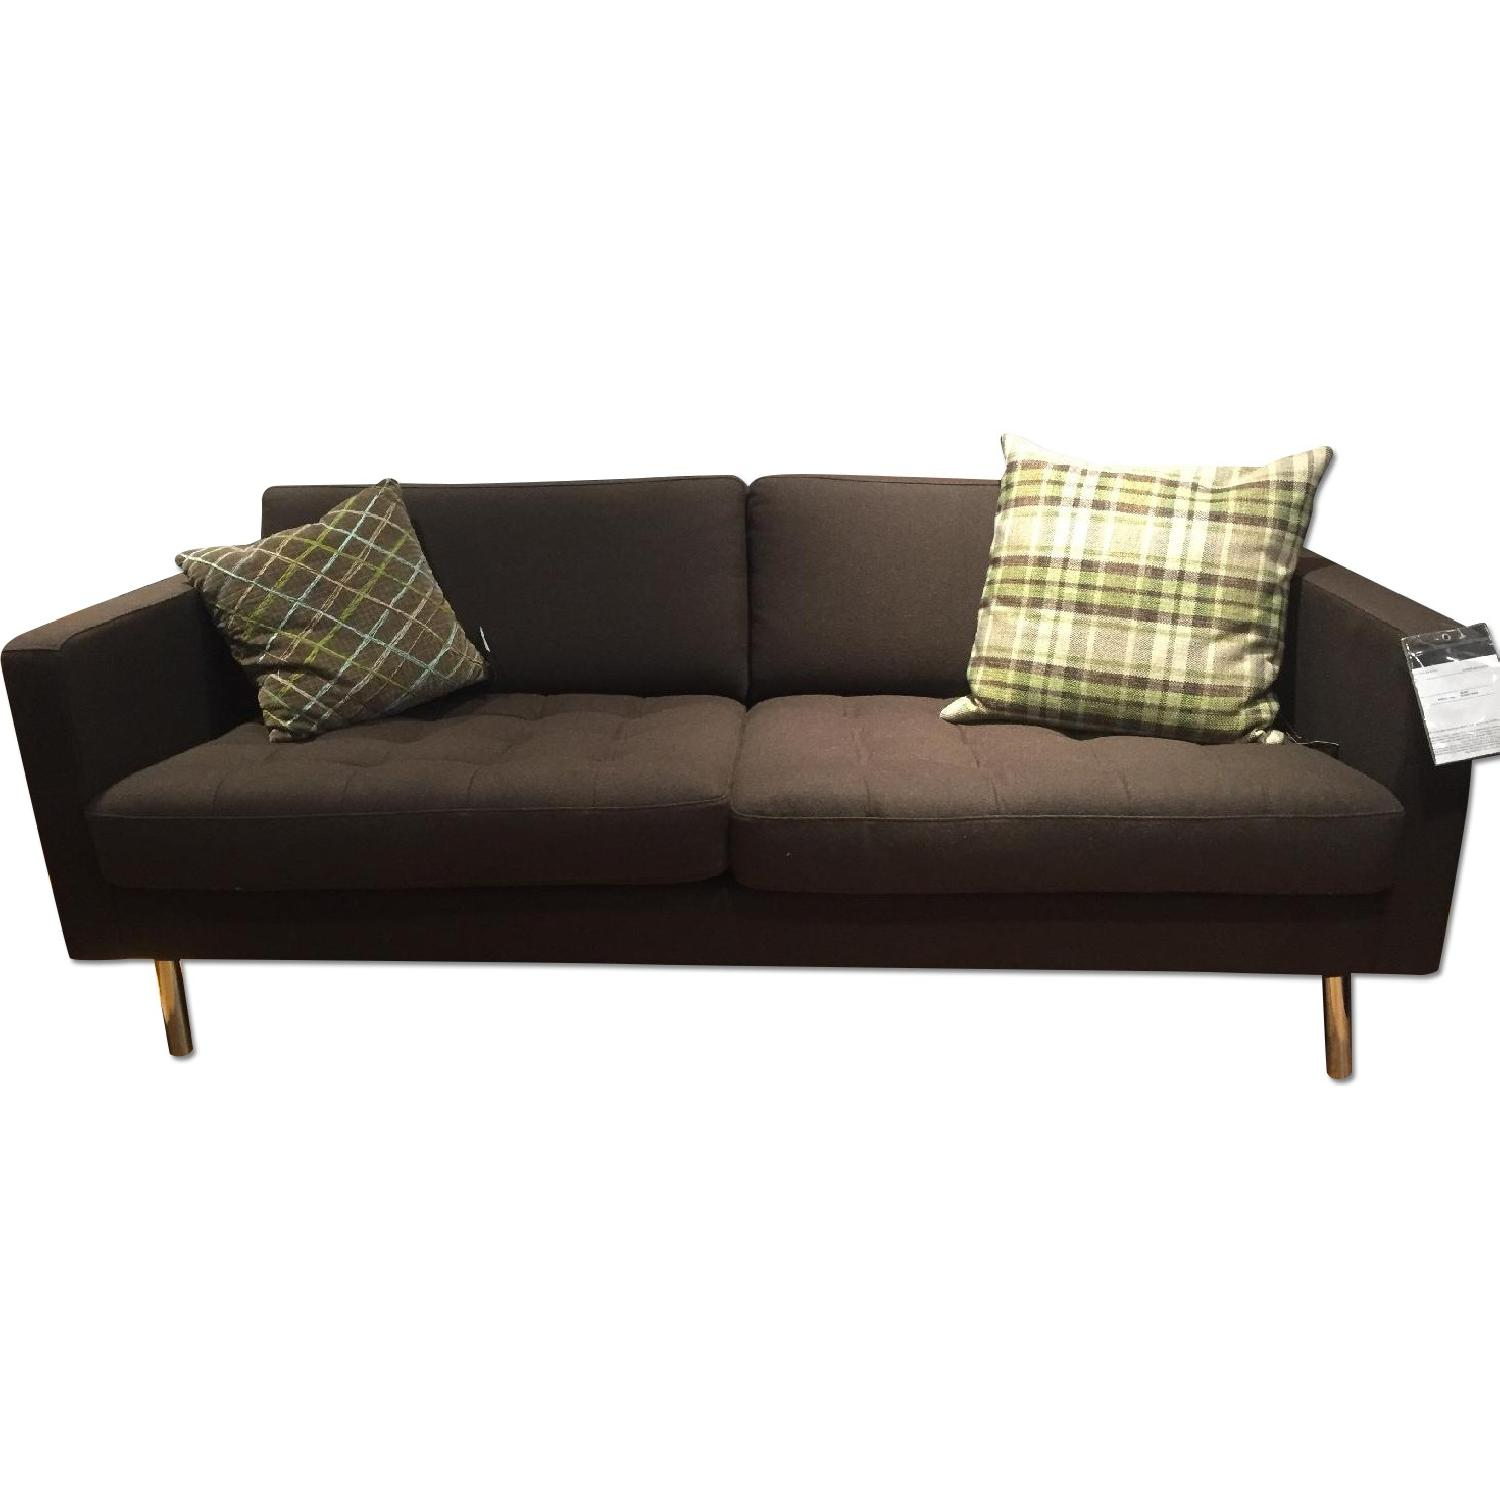 BoConcept Olympia Sofa in Chocolate Lux - image-0